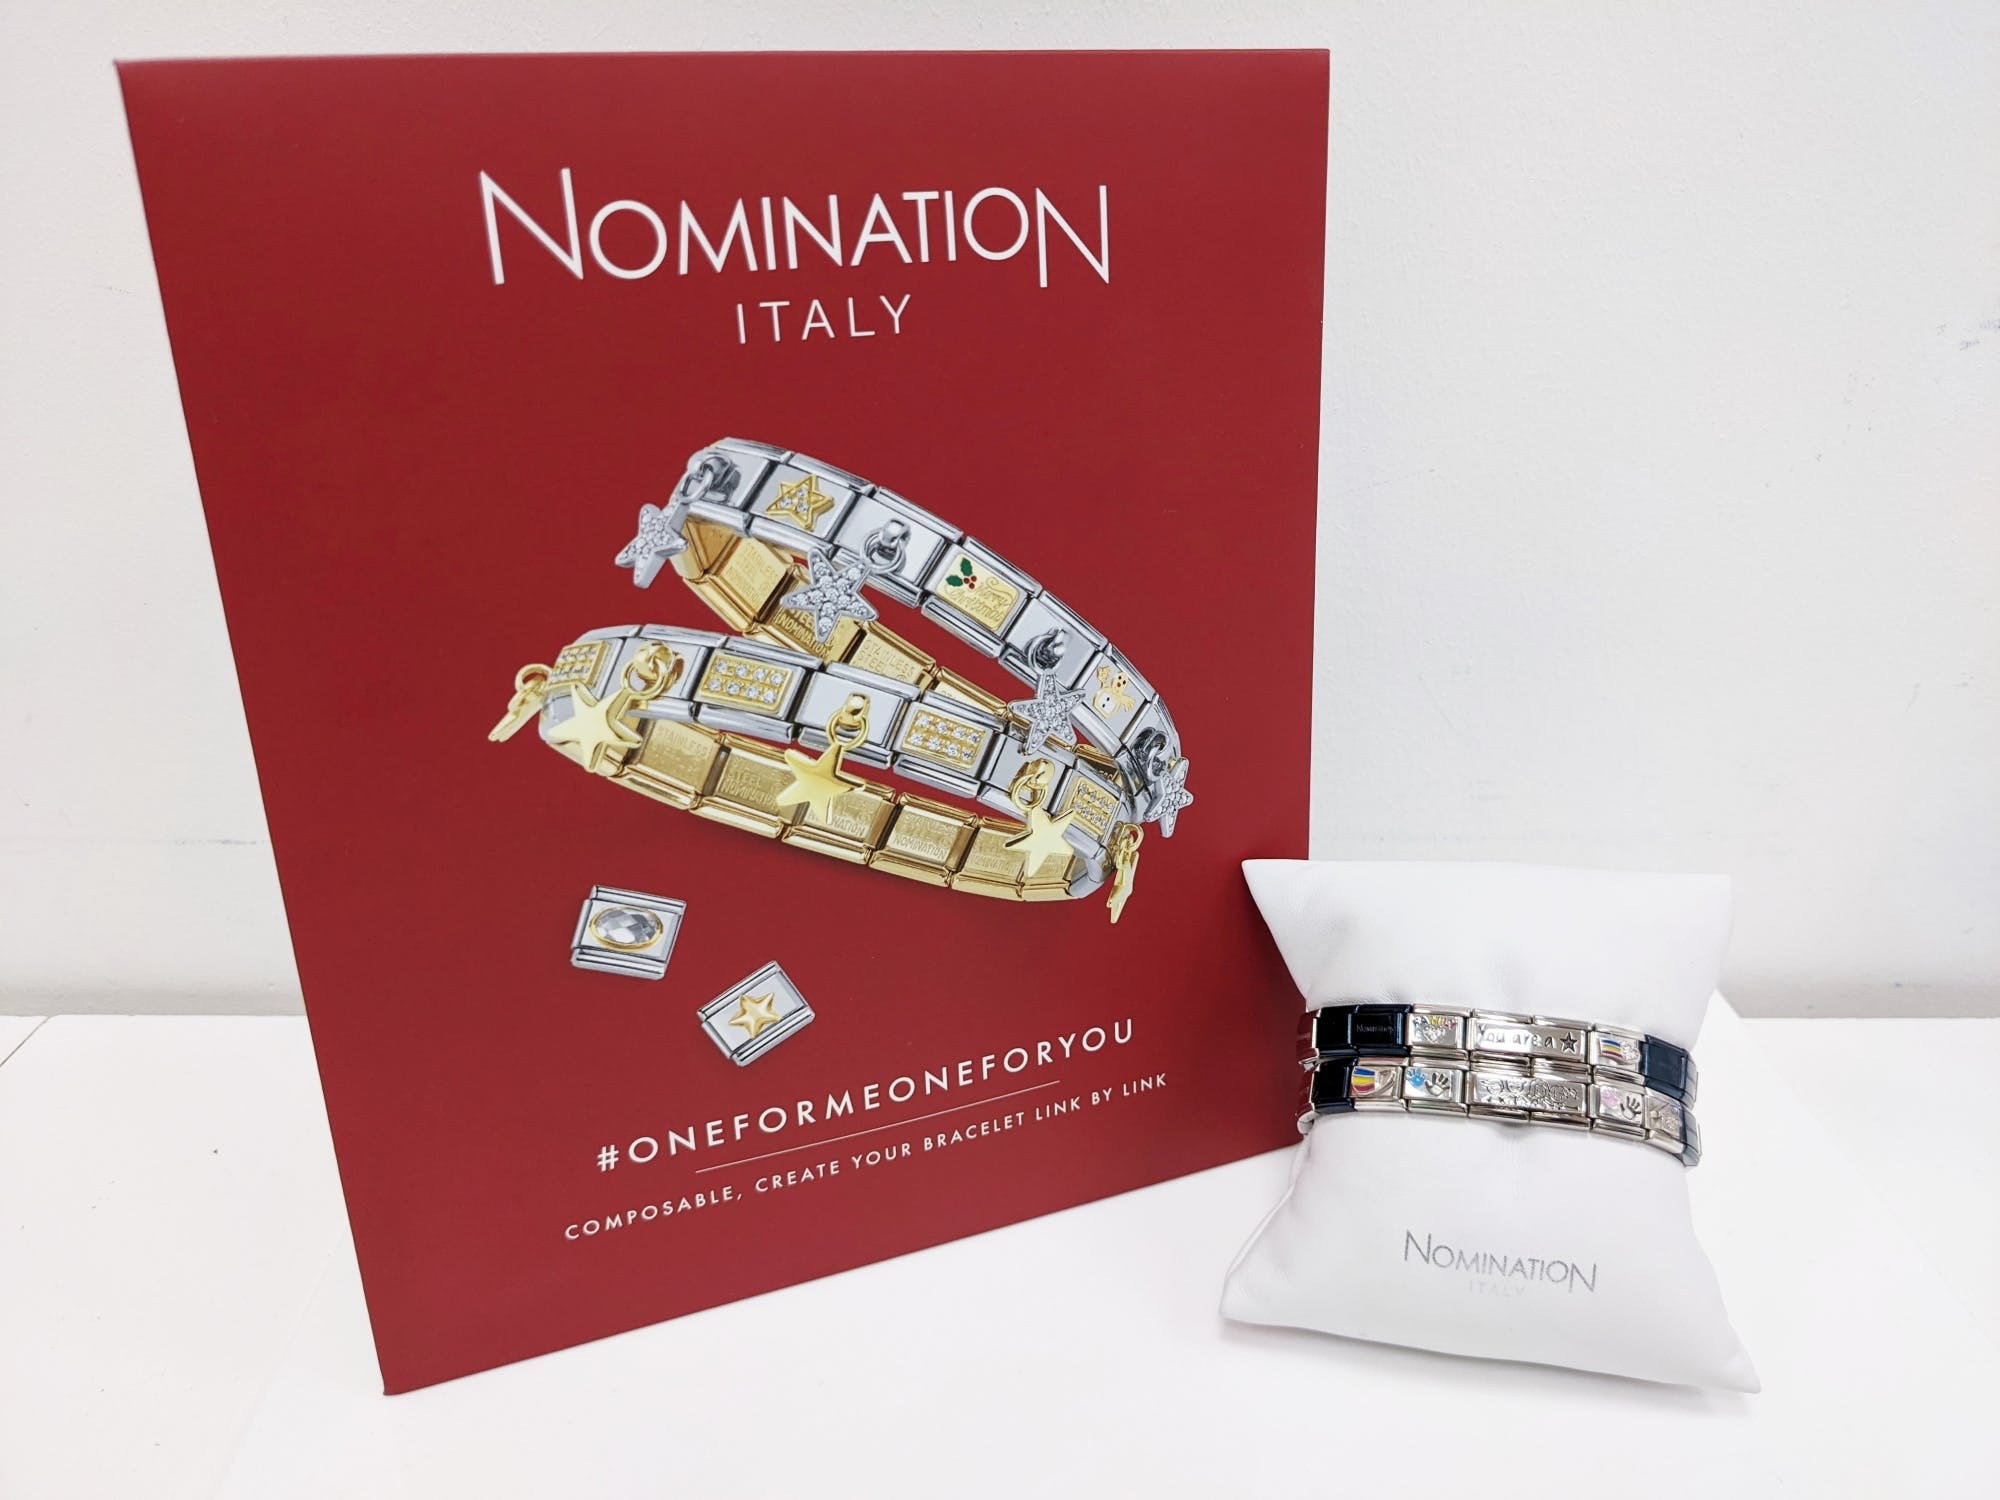 With more than 3,000 composable charms to choose from, choices almost never end at Nomination. The new Silver zirconia family charm, along with the sparkly heart with rainbow charms, are both proving veeeery popular at the mo' - they're just £29 too!